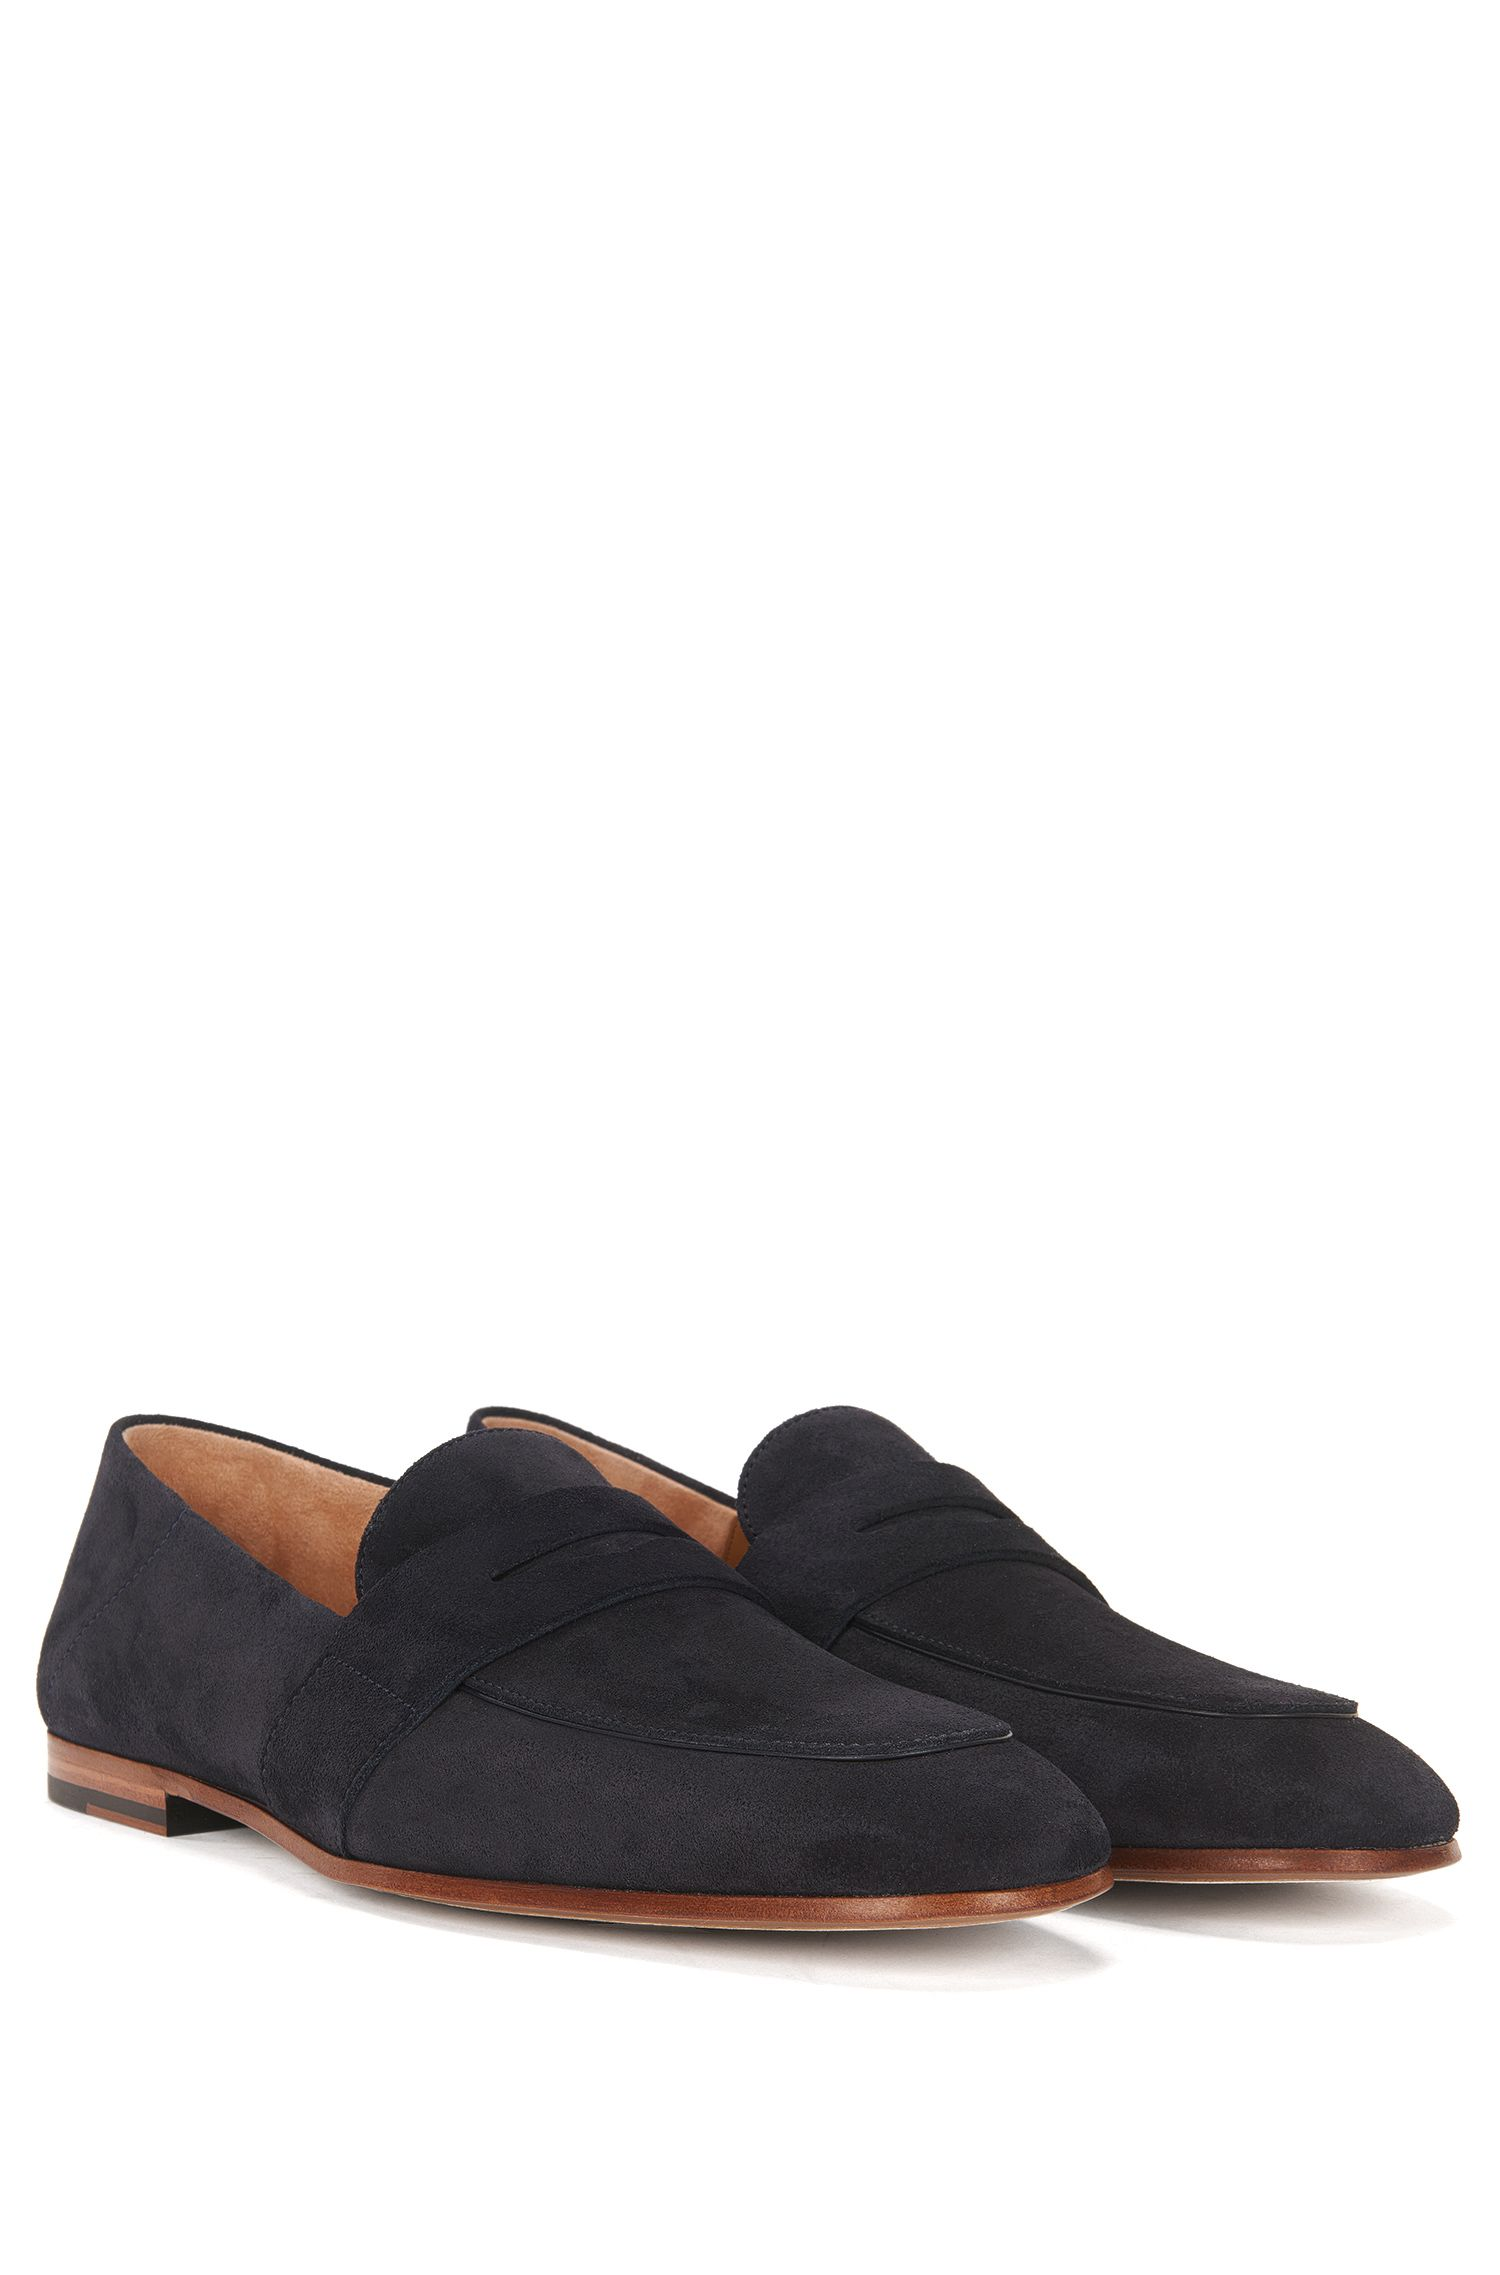 Suede Penny Loafer | Safari Loaf